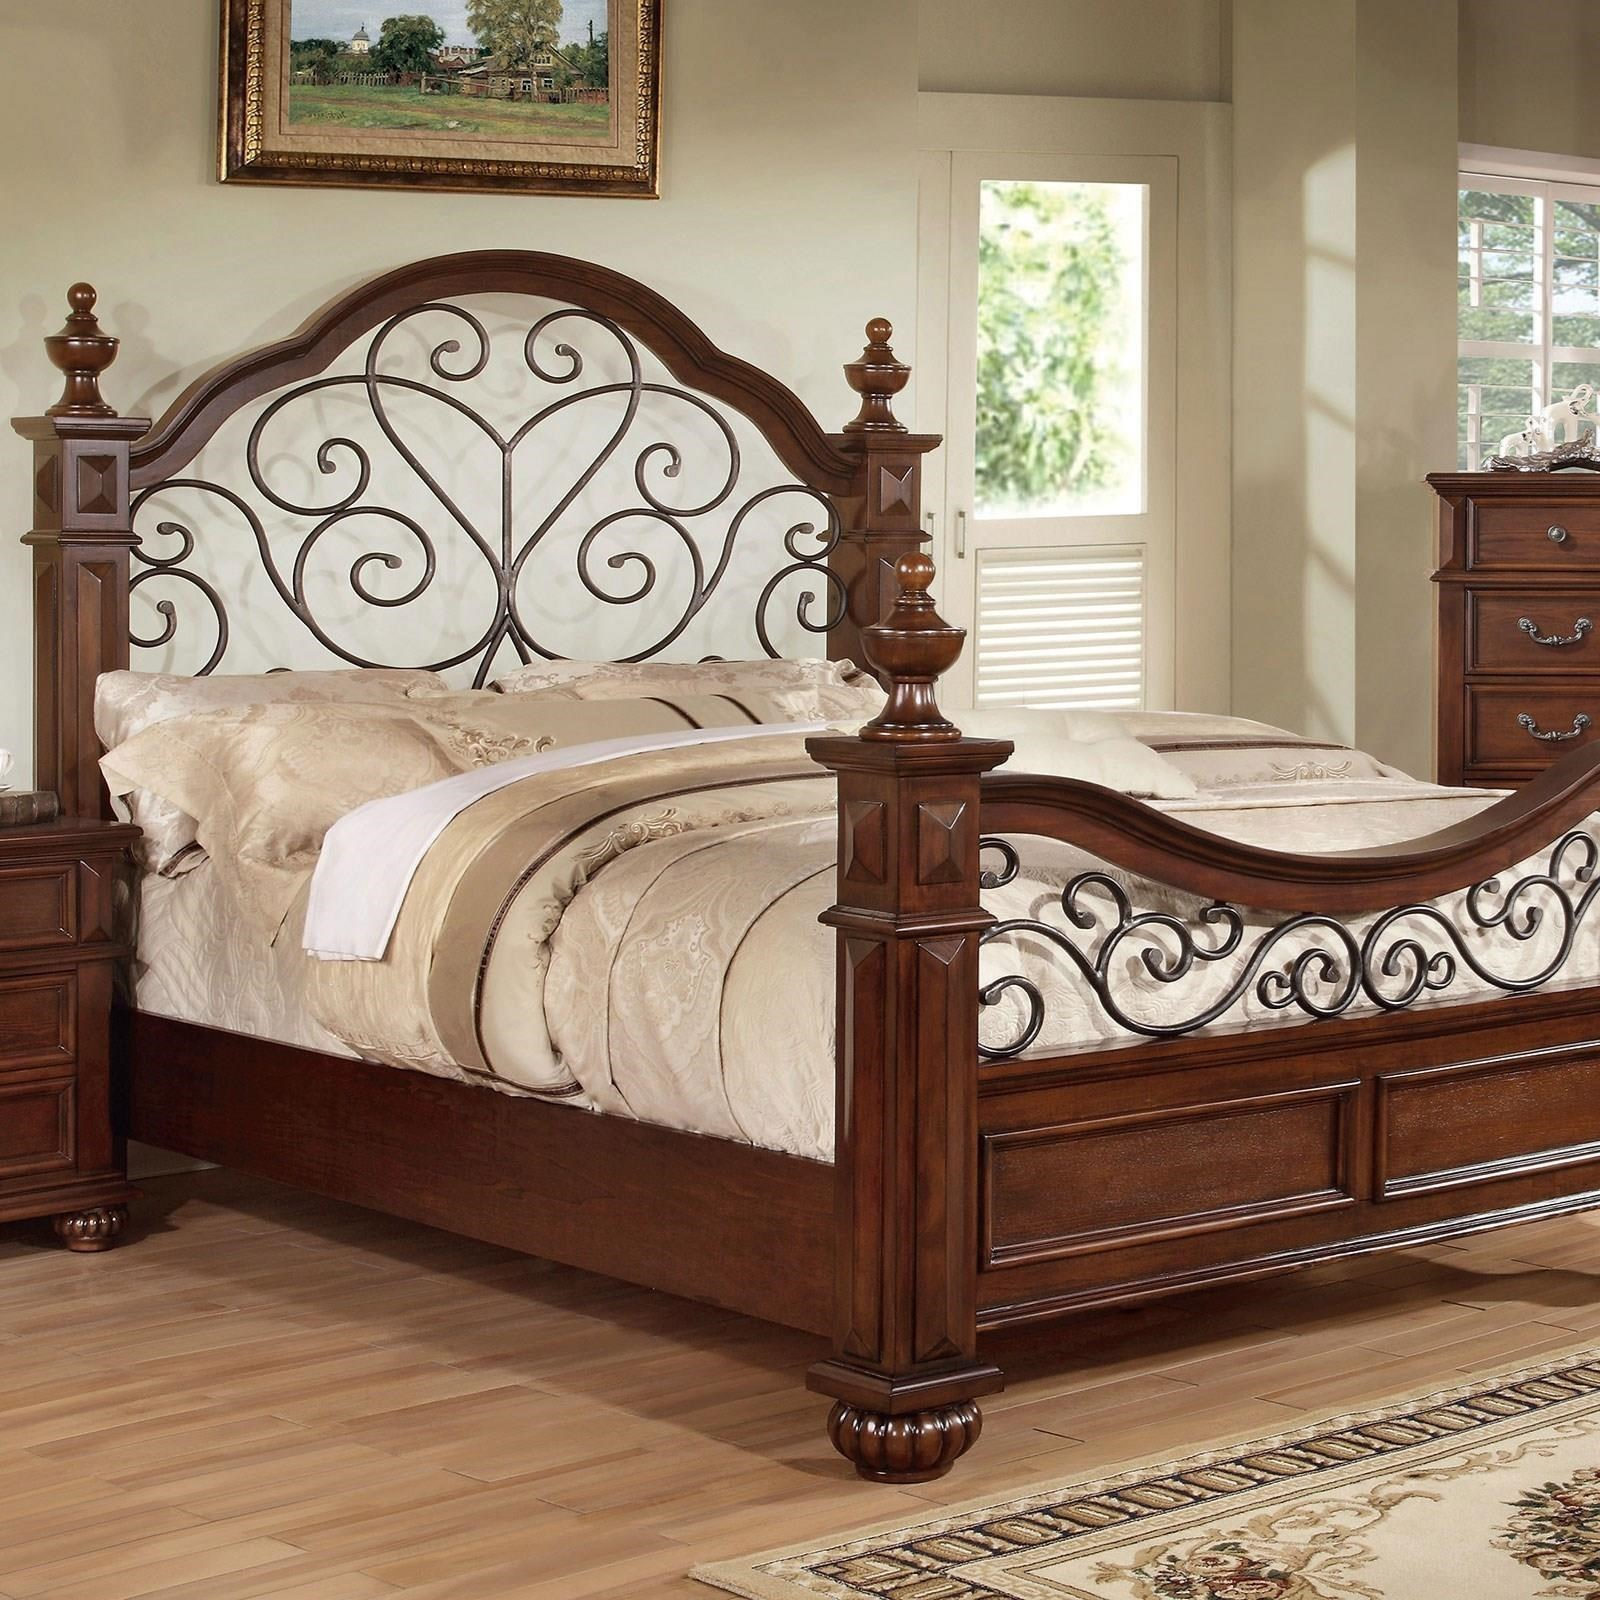 Furniture Of America Foa Landaluce Cm7811ck Bed Traditional California King Wrought Iron Poster Bed Del Sol Furniture Poster Beds